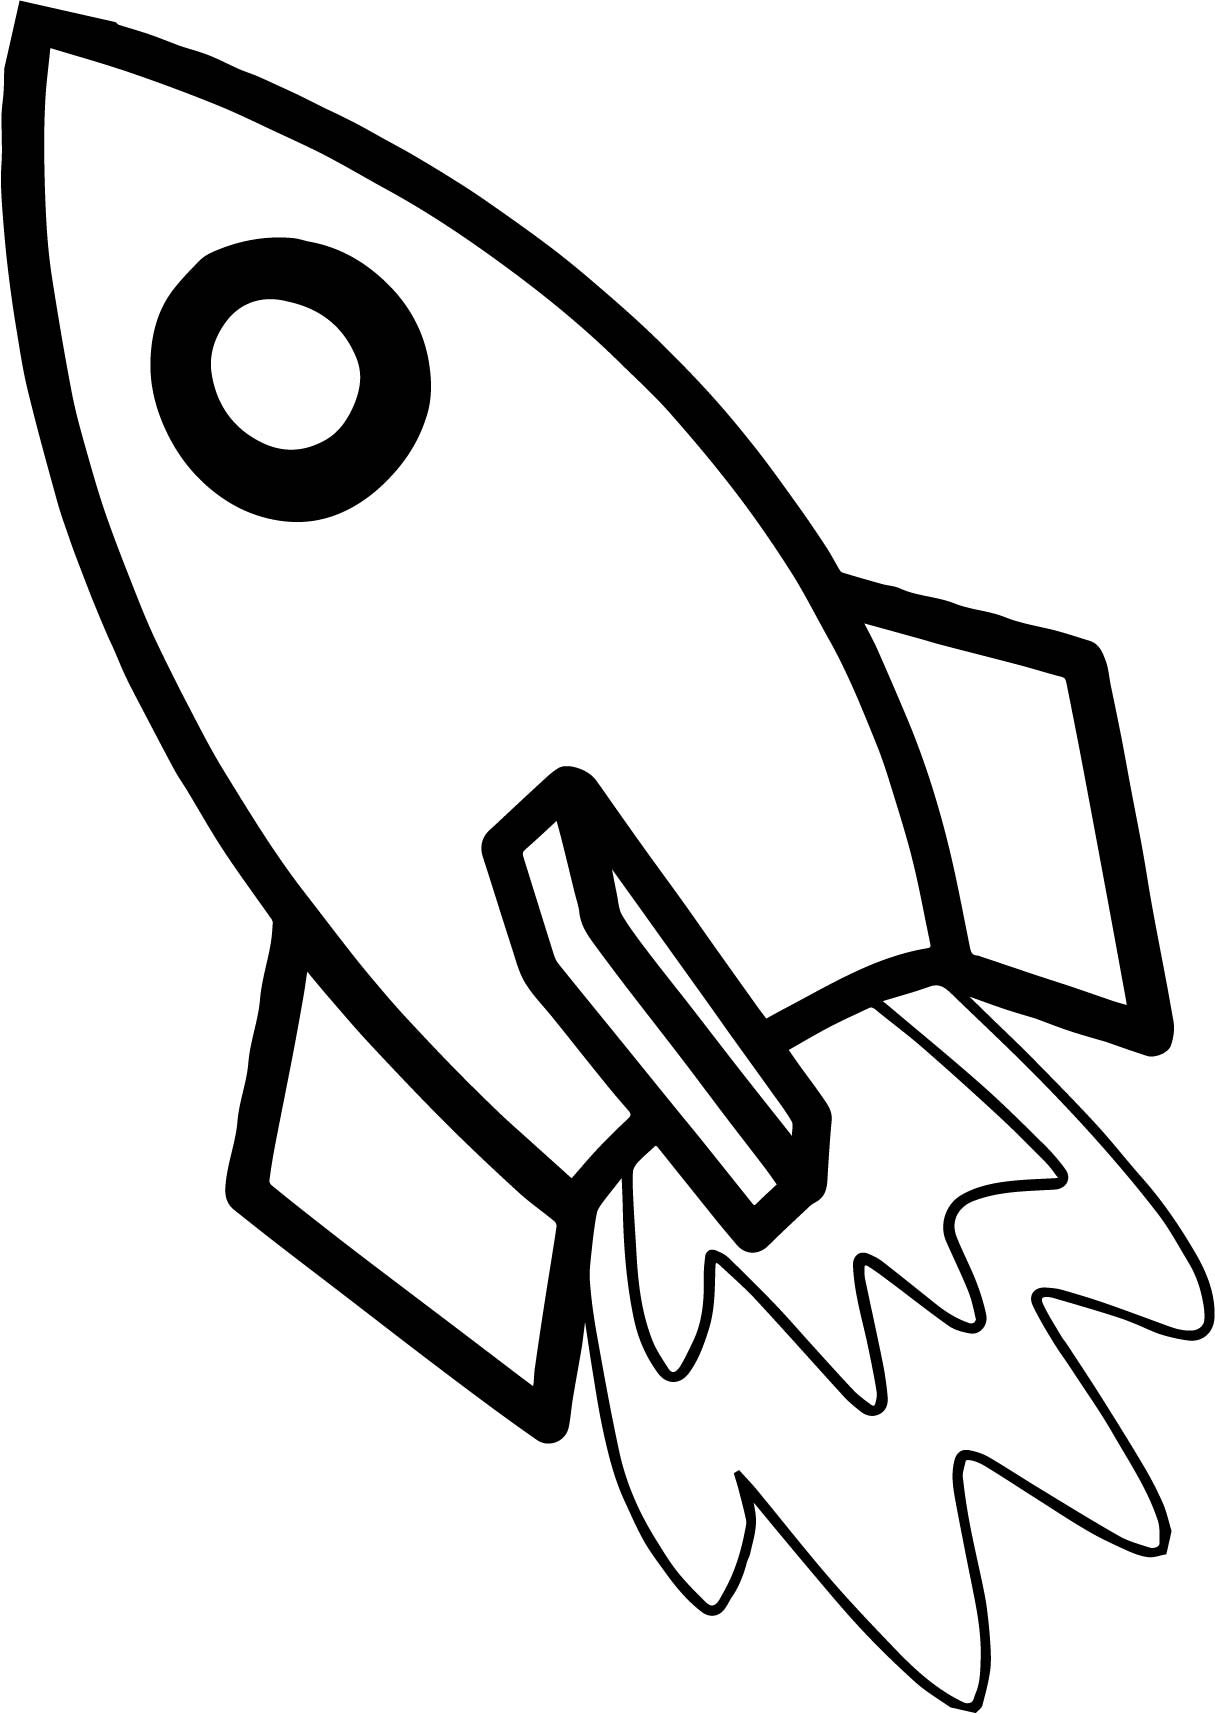 Astronaut Rocket Coloring Page Wecoloringpage